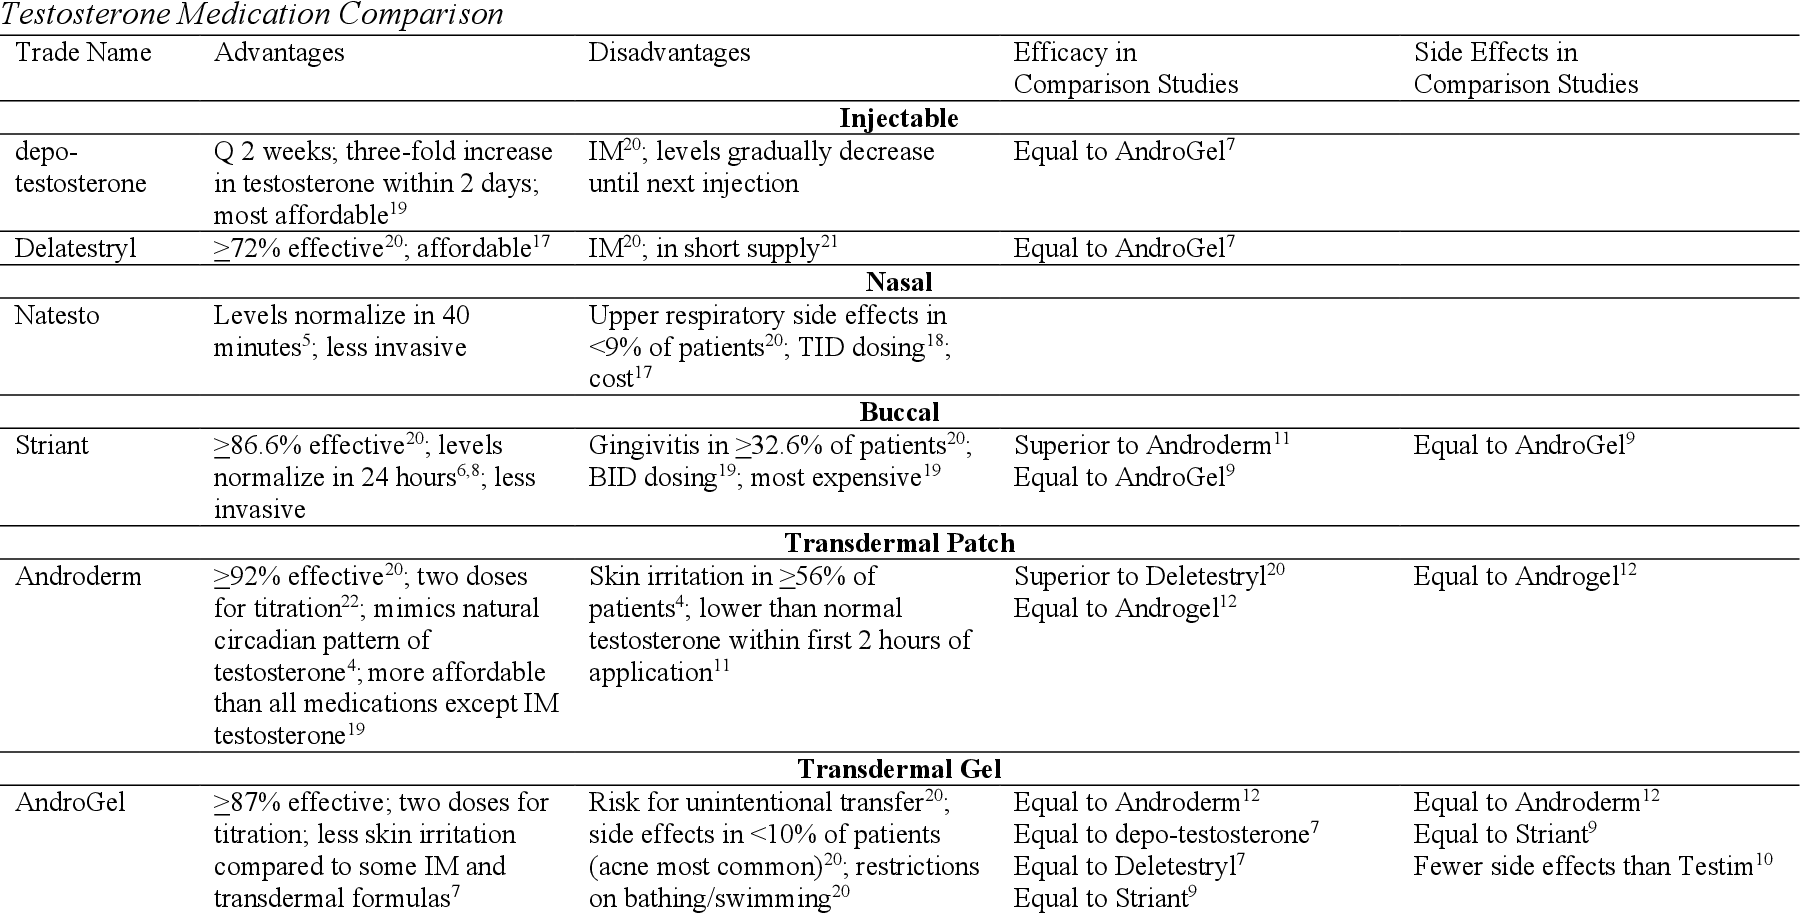 Comparison of Testosterone Replacement Therapy Medications